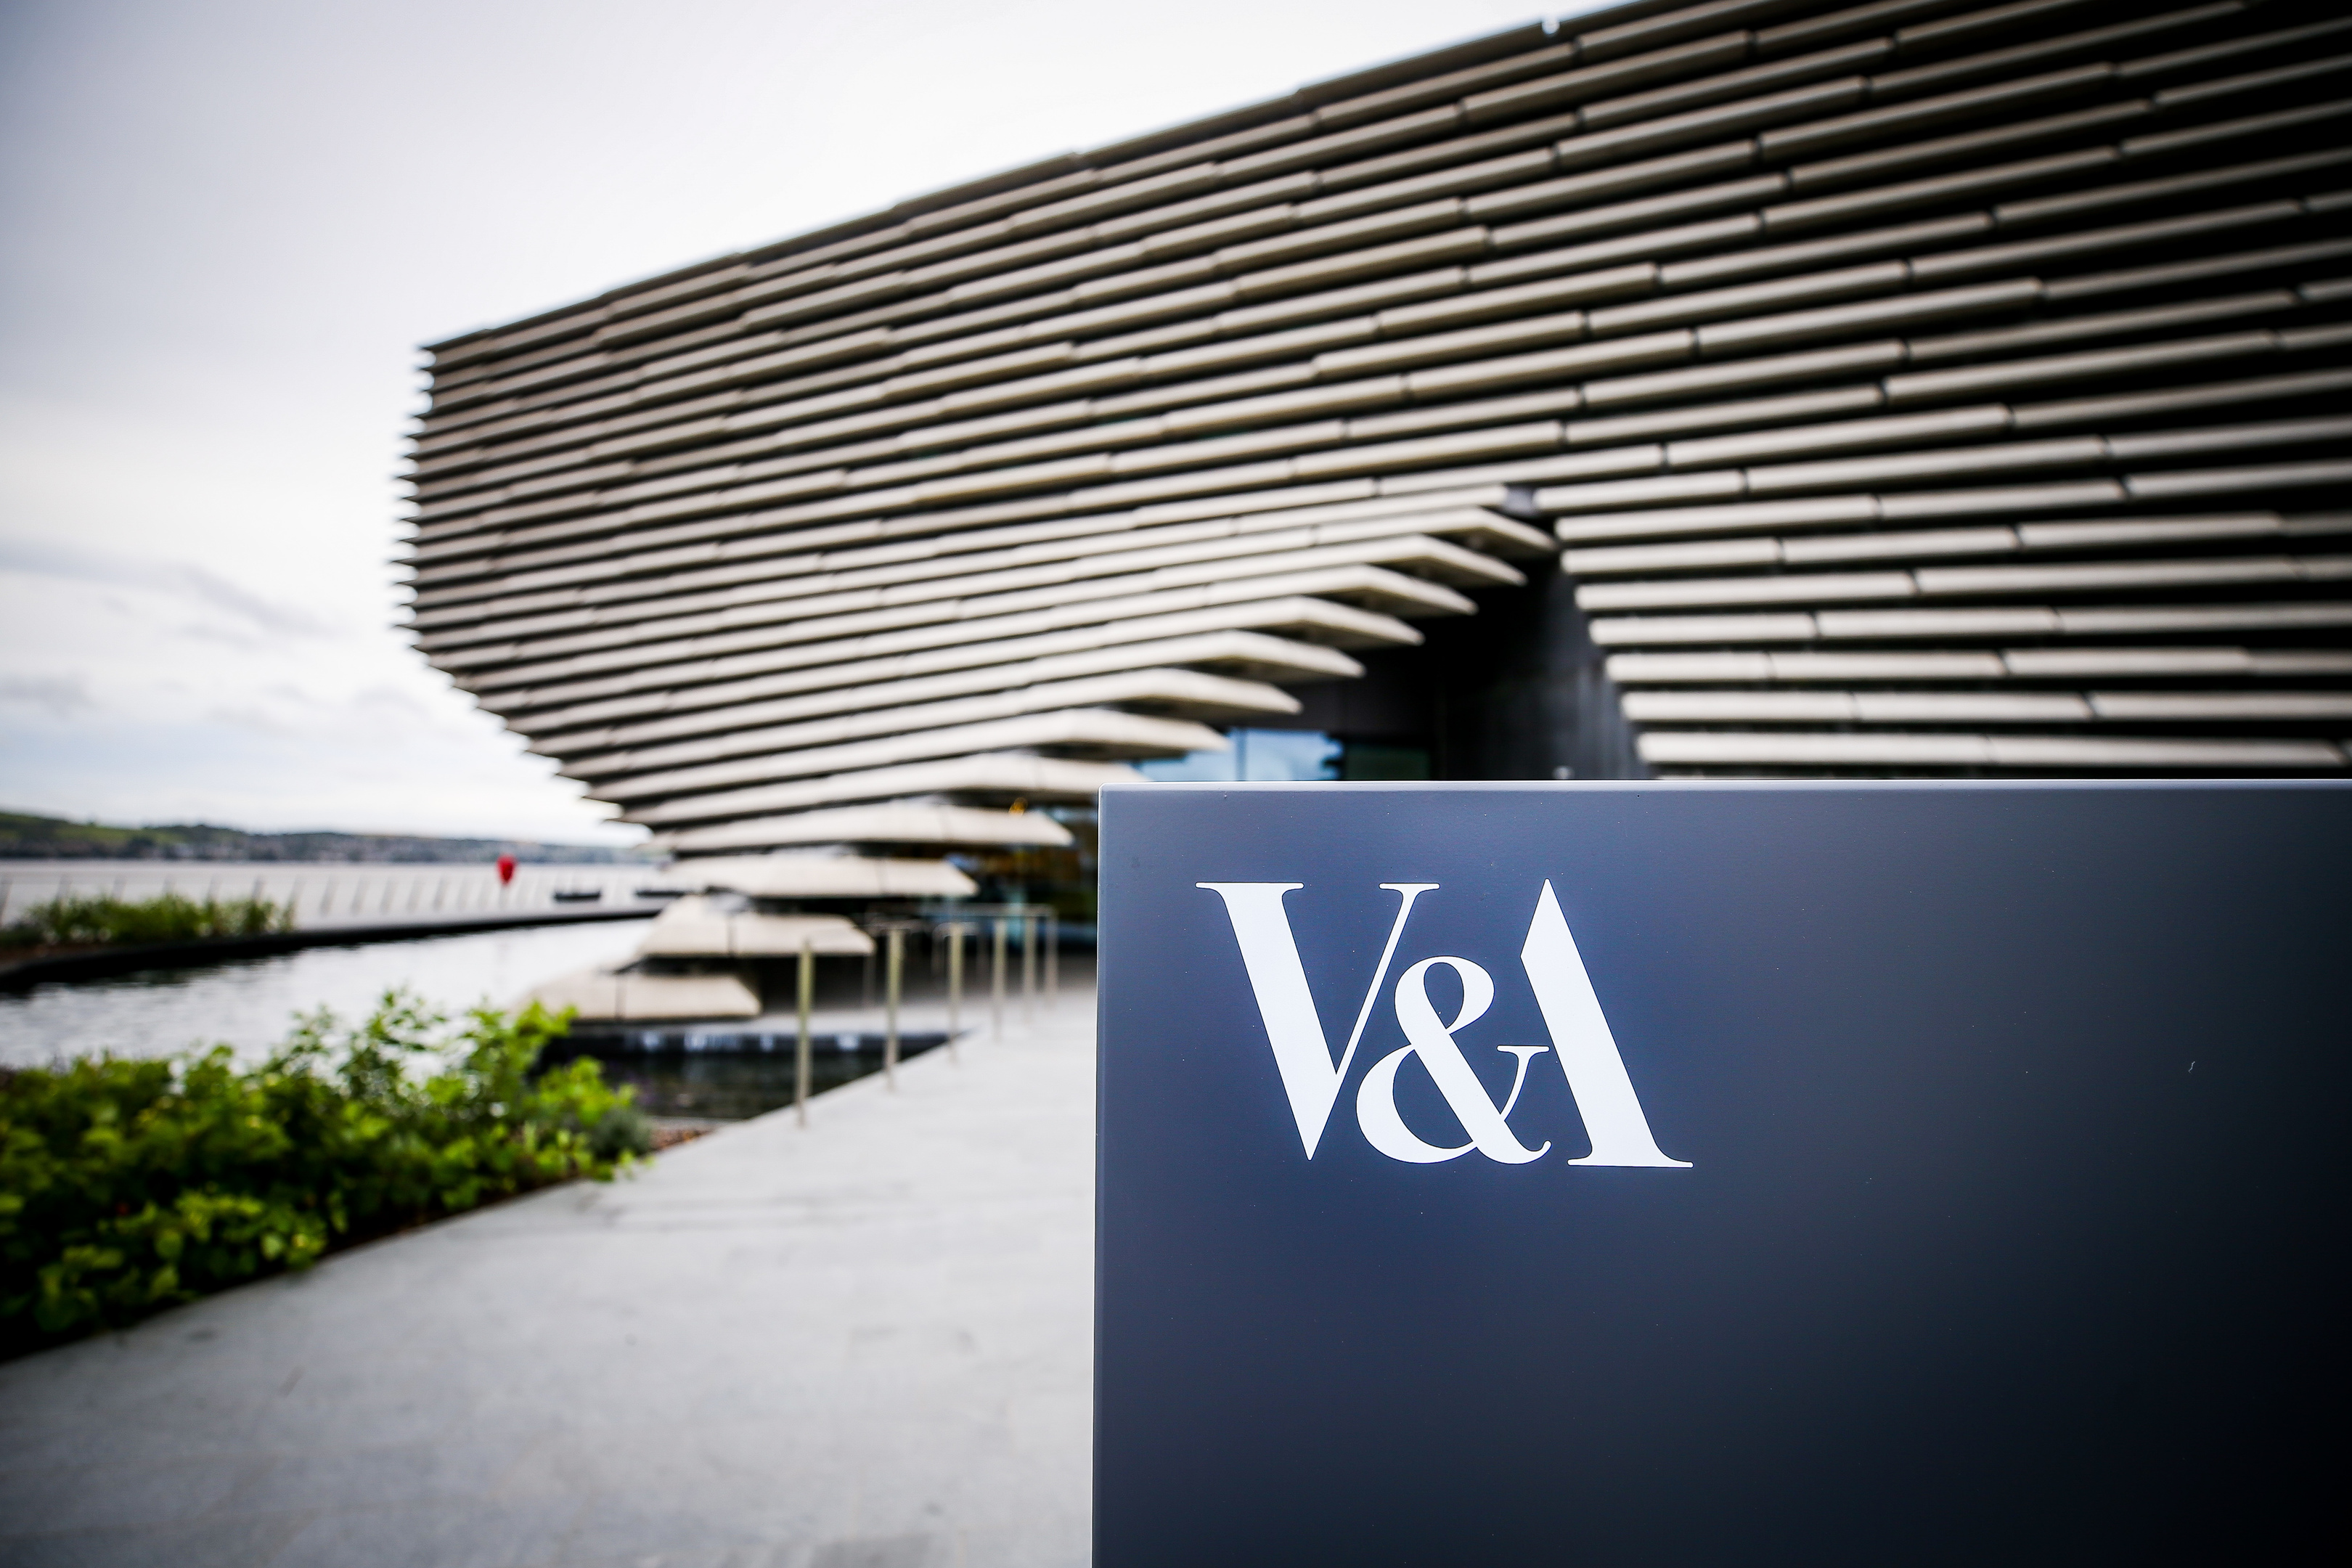 The Courier got an exclusive first look inside the V&A.